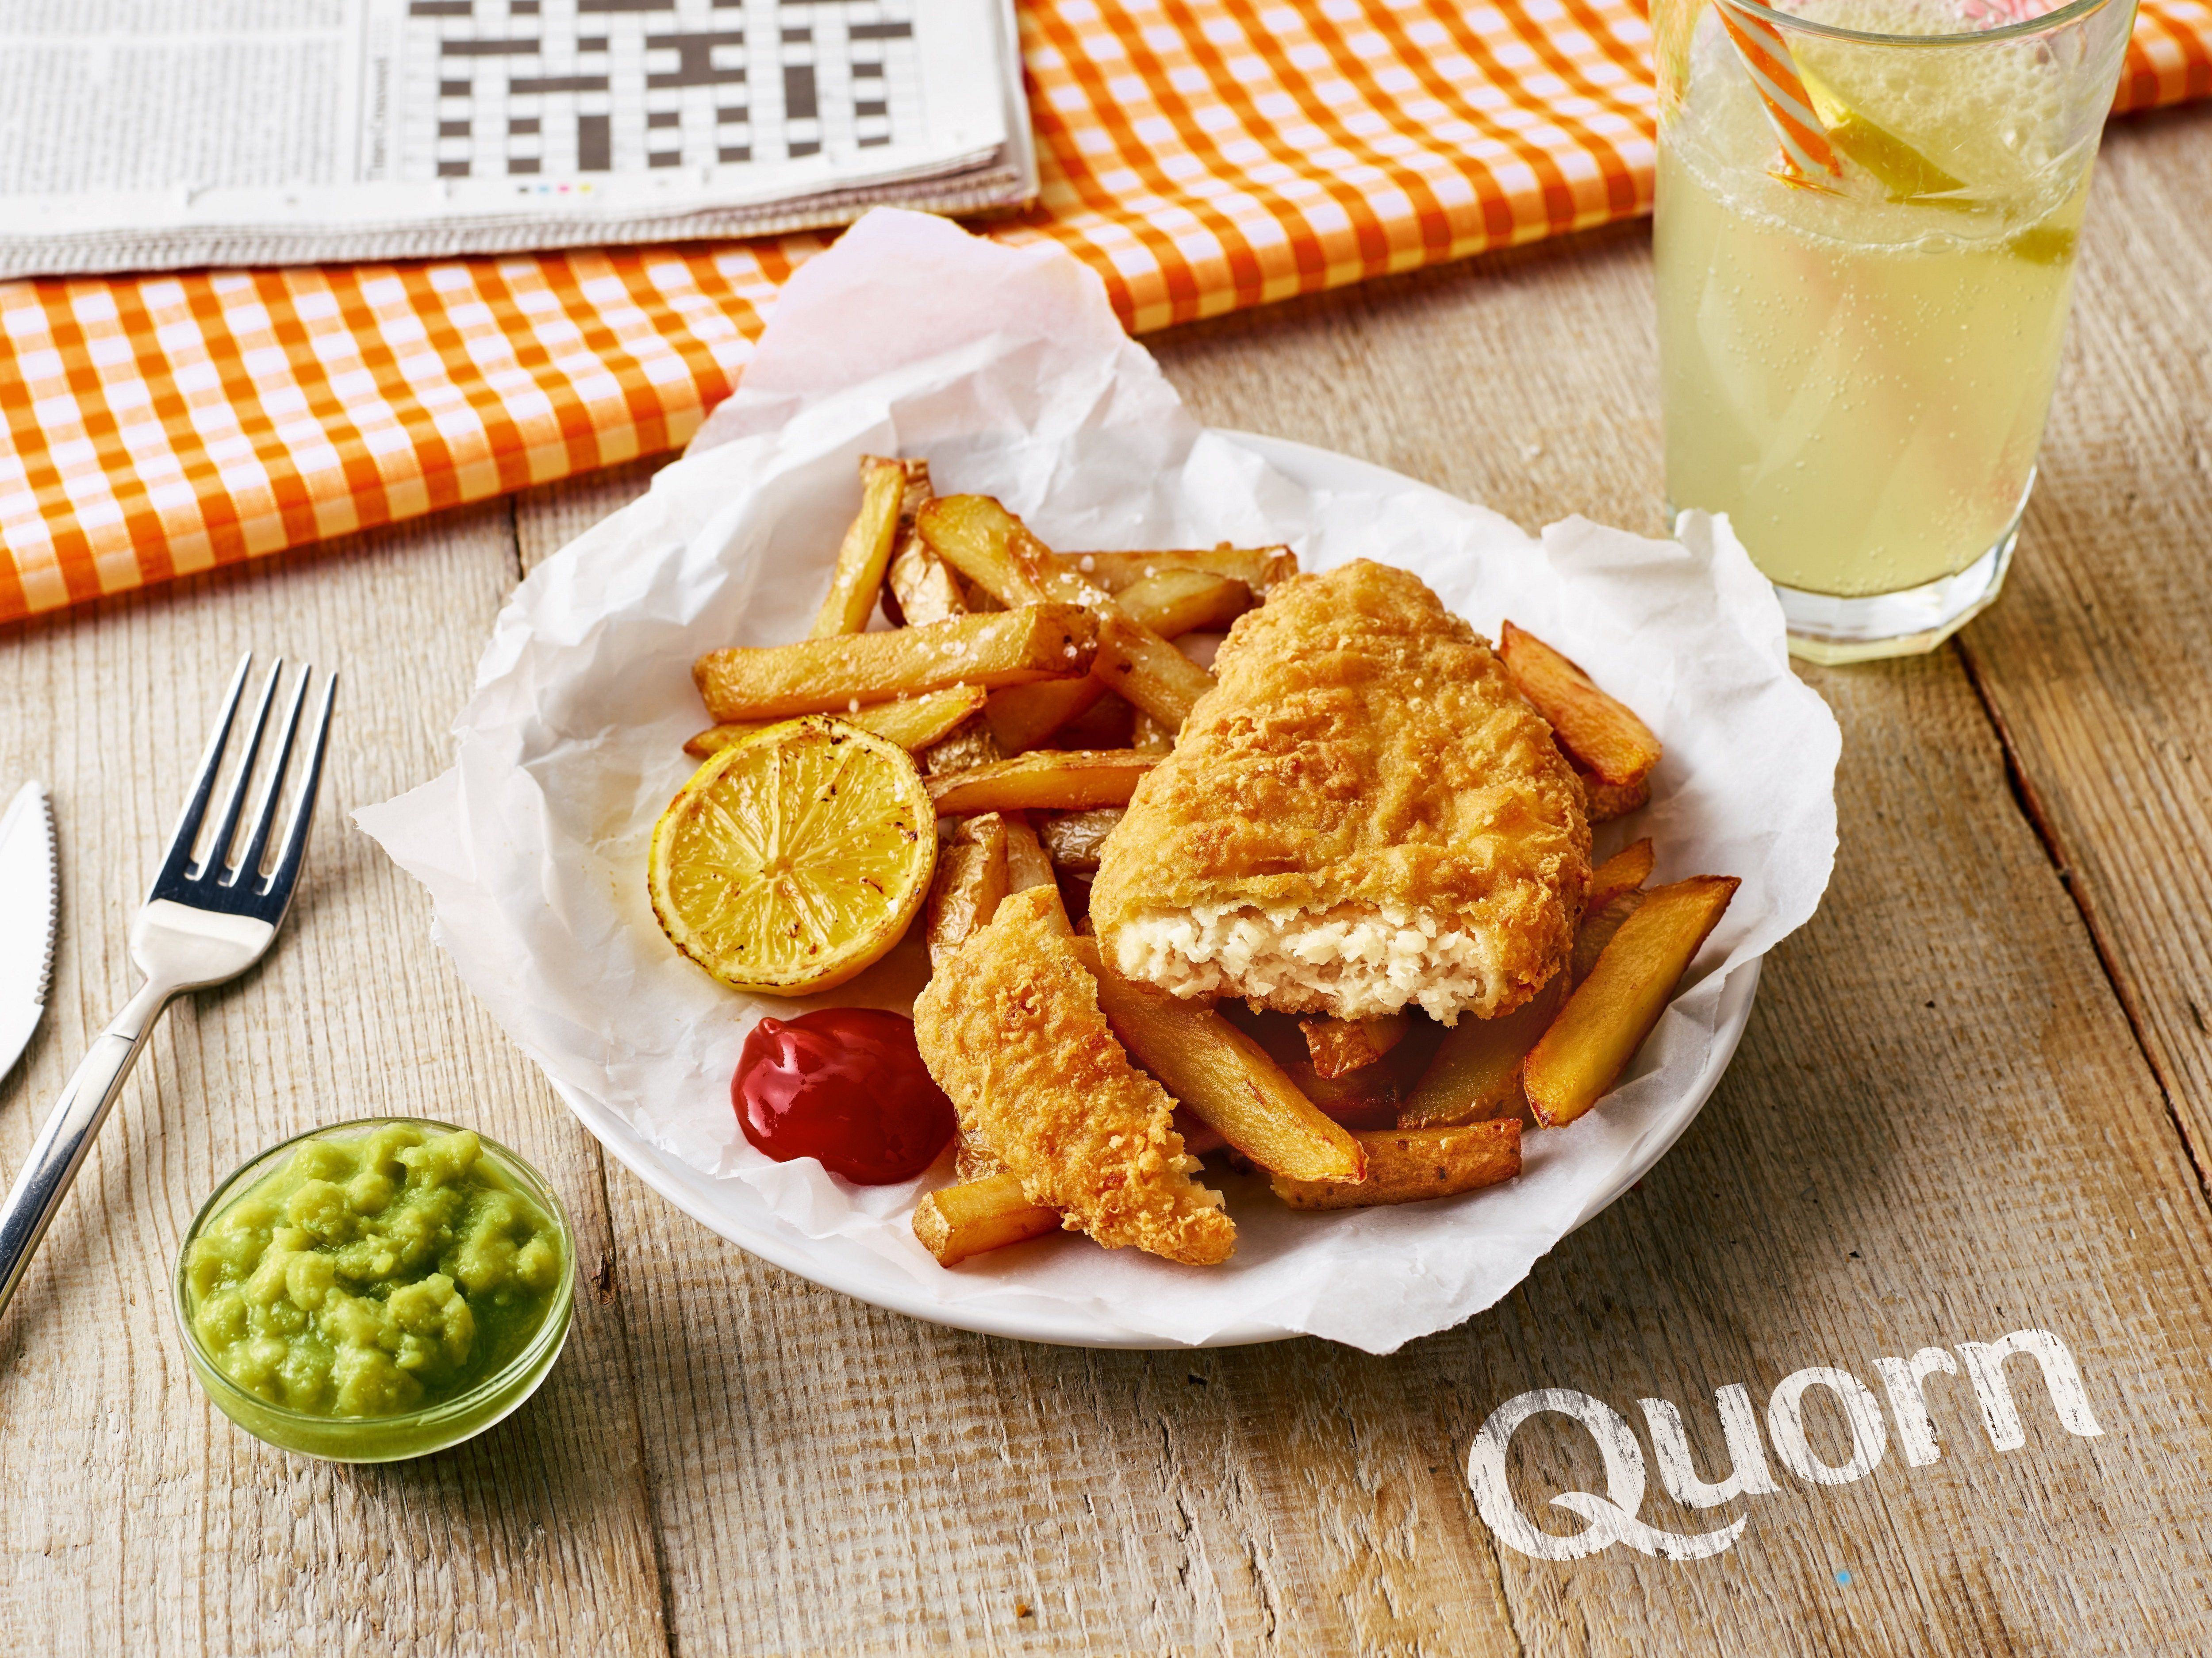 Quorn Launches Vegan 'Fish And Chips' (And We Can't Wait To Try